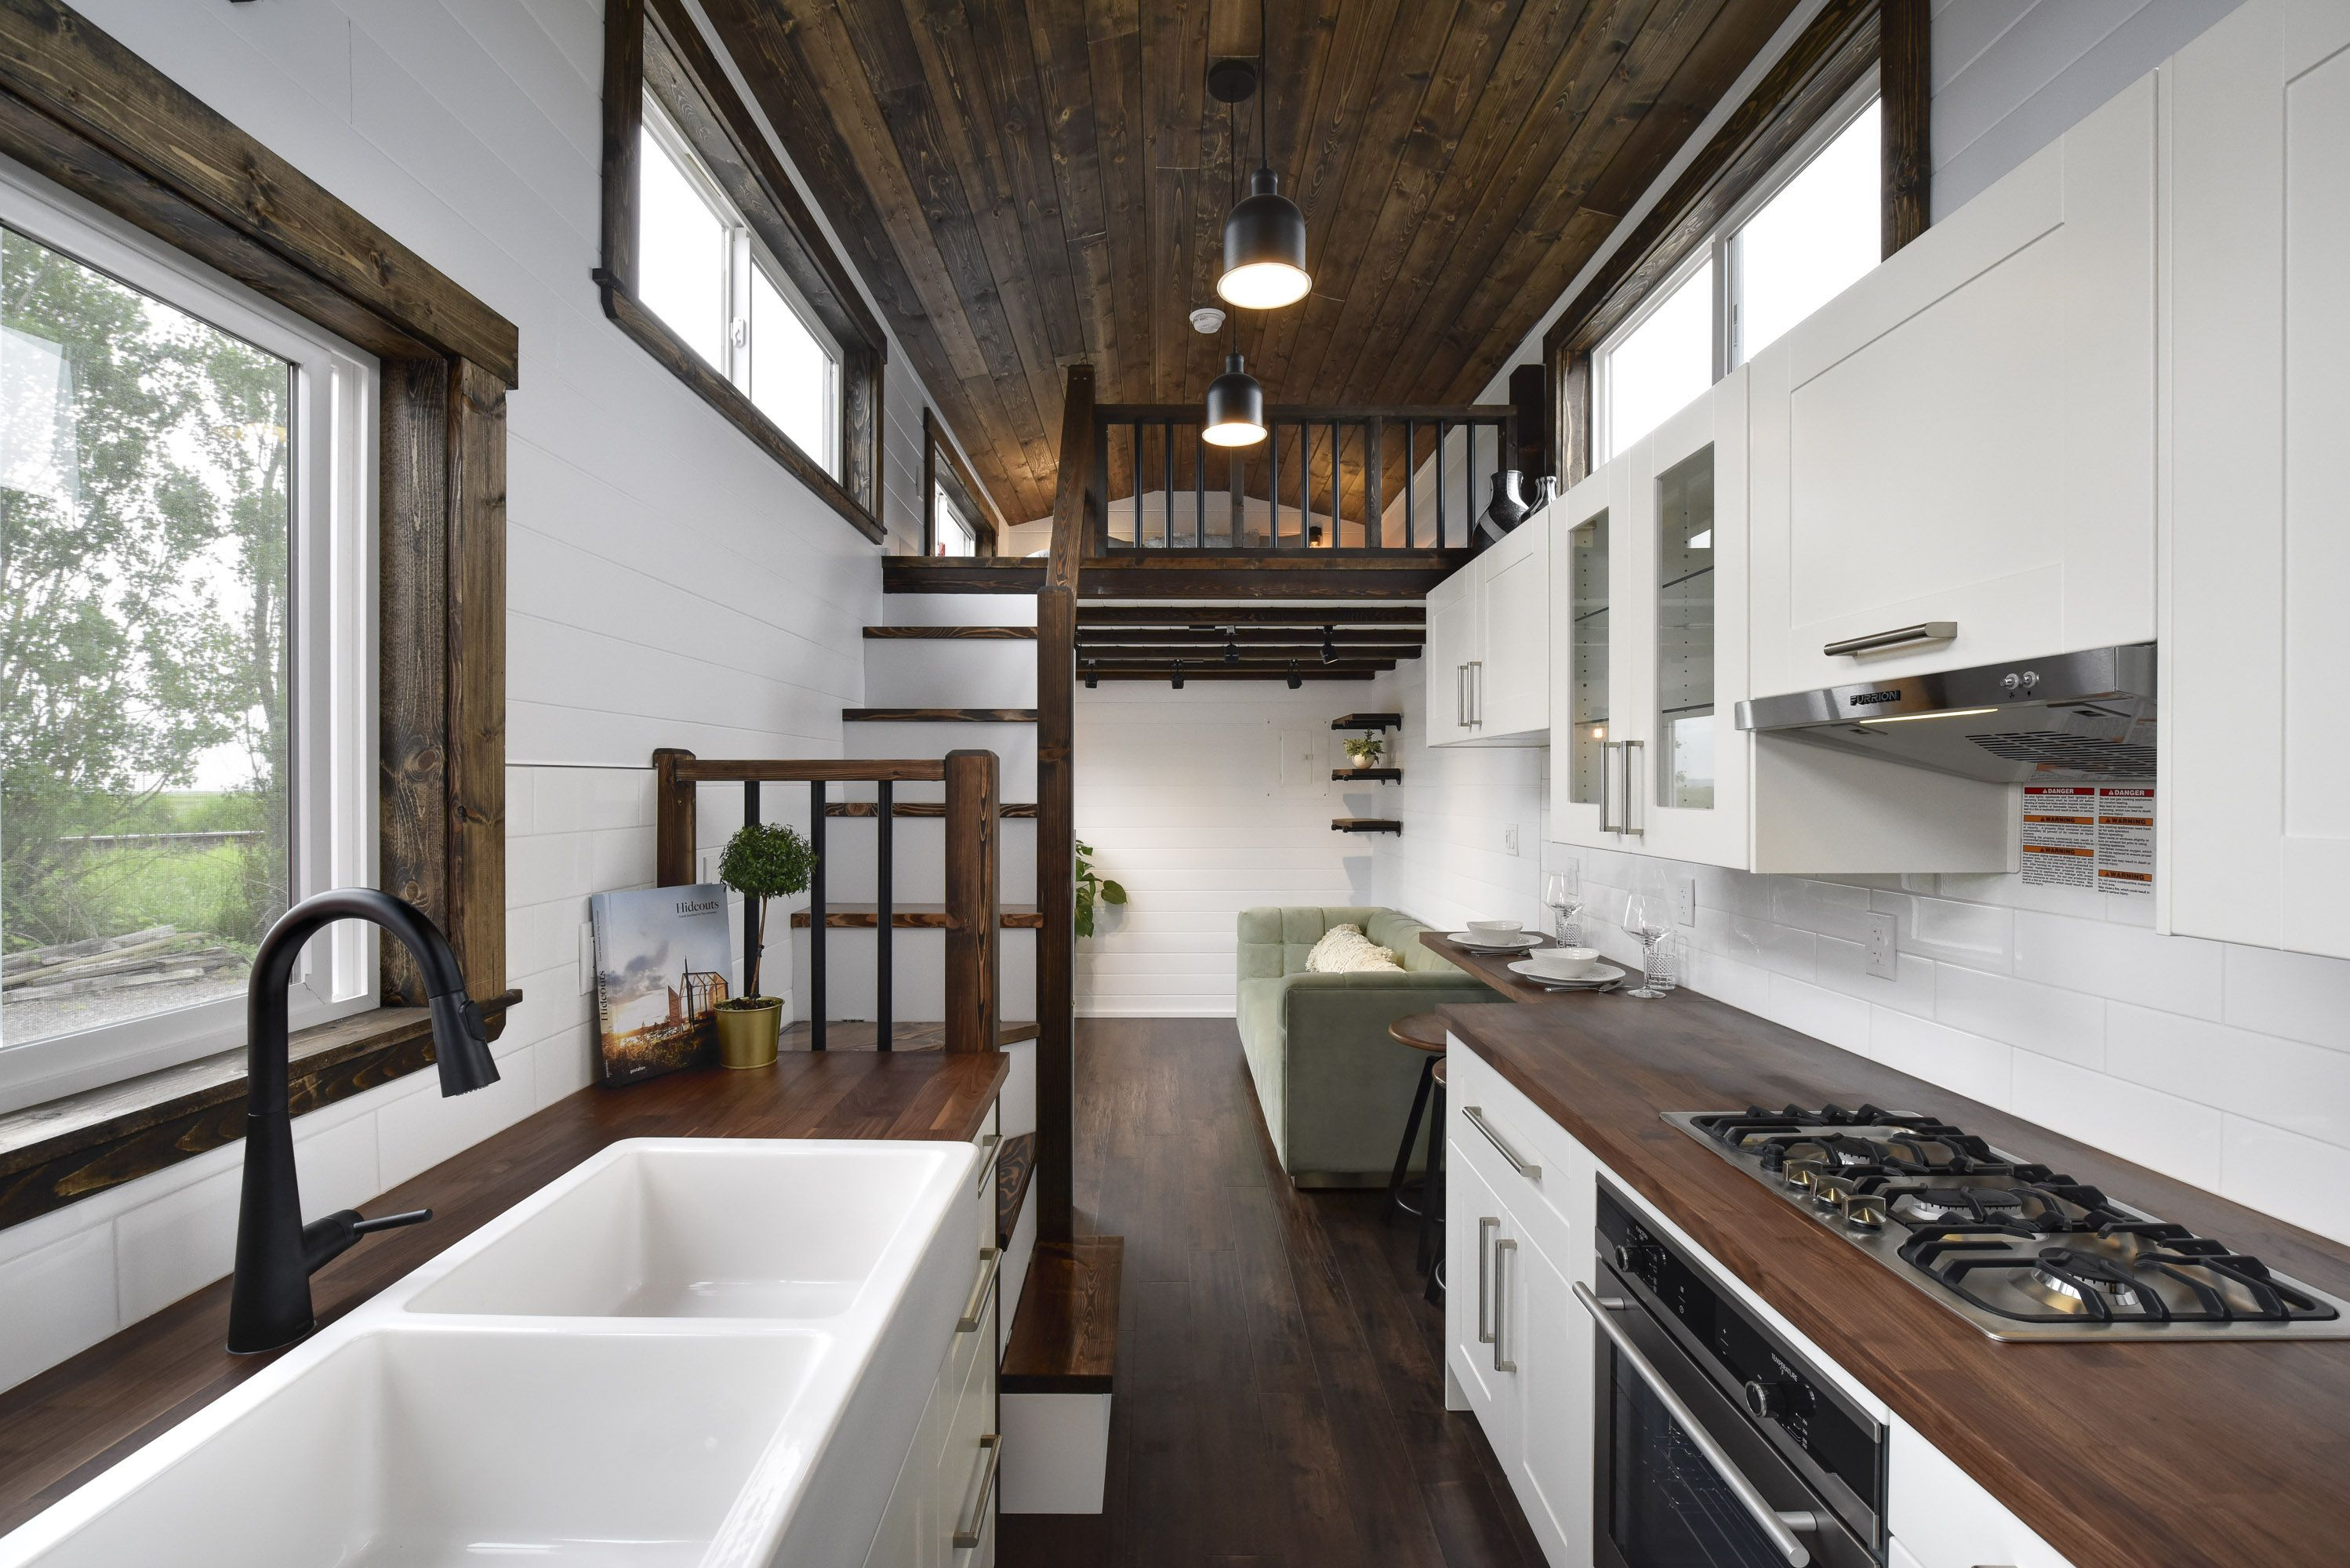 21 Prefab Tiny Houses You Can Buy Right Now